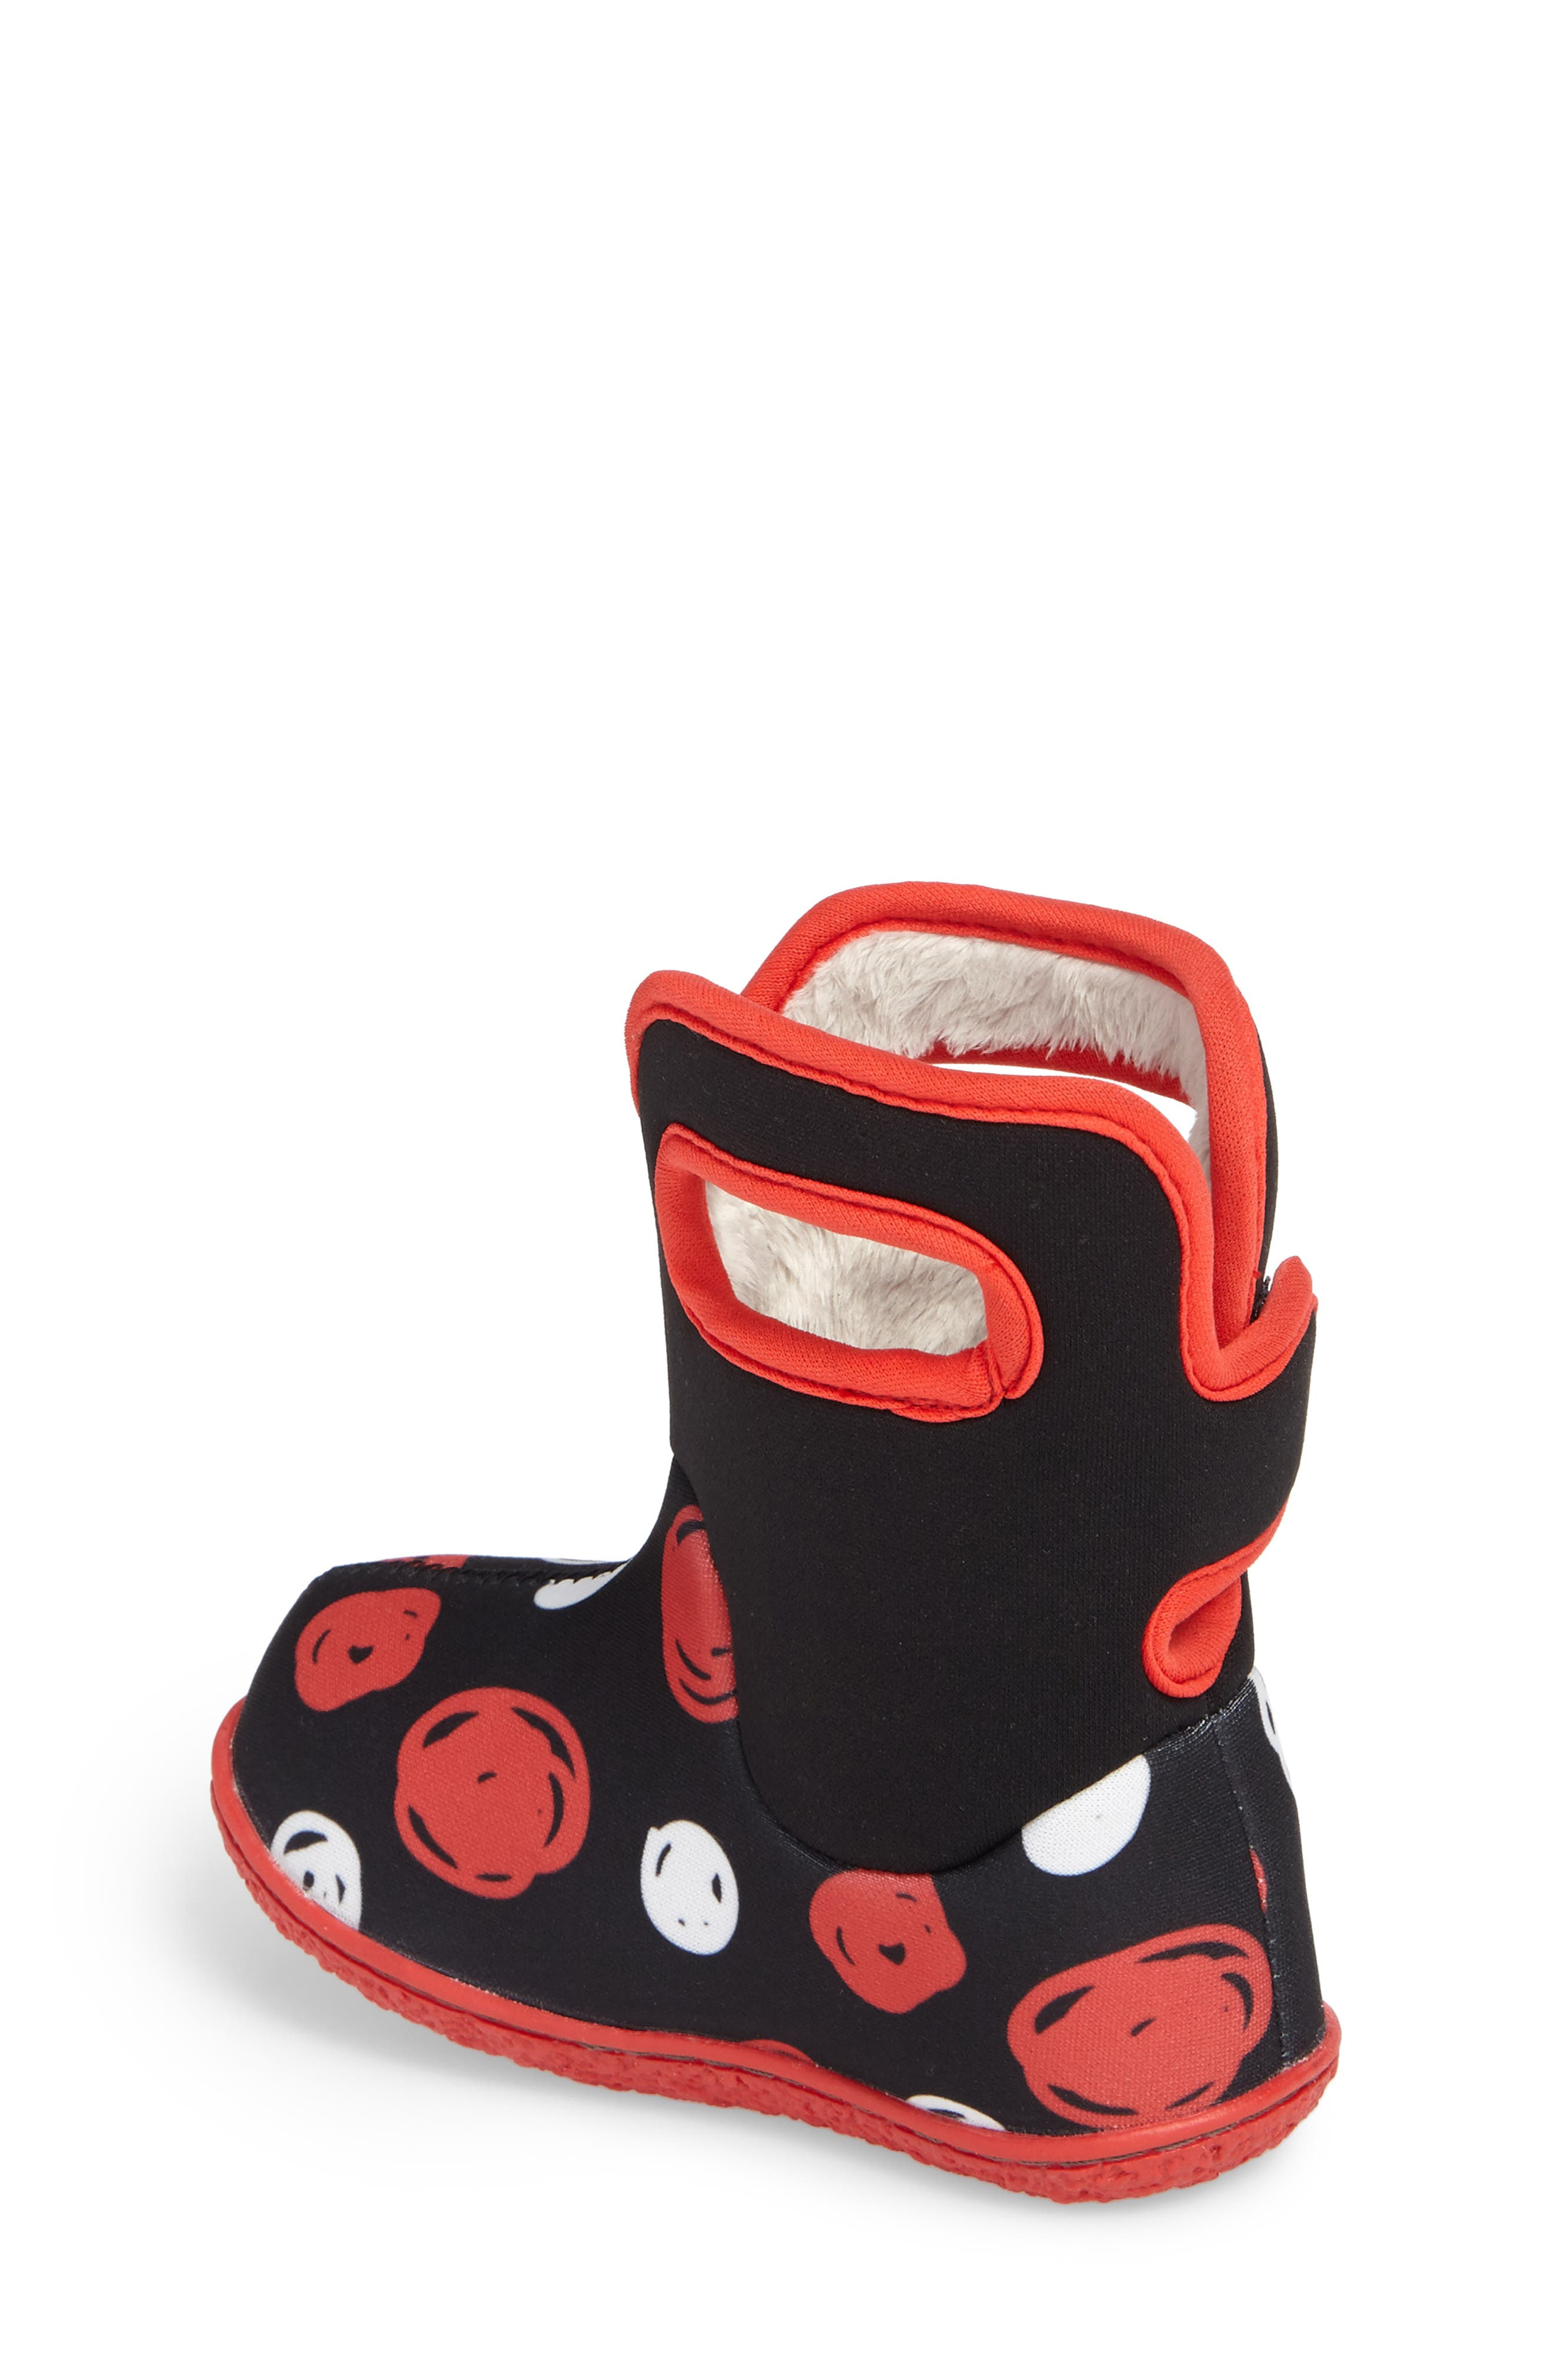 Alternate Image 2  - Bogs Baby Bogs Classic Sketched Dots Washable Insulated Waterproof Boot (Baby, Walker & Toddler)